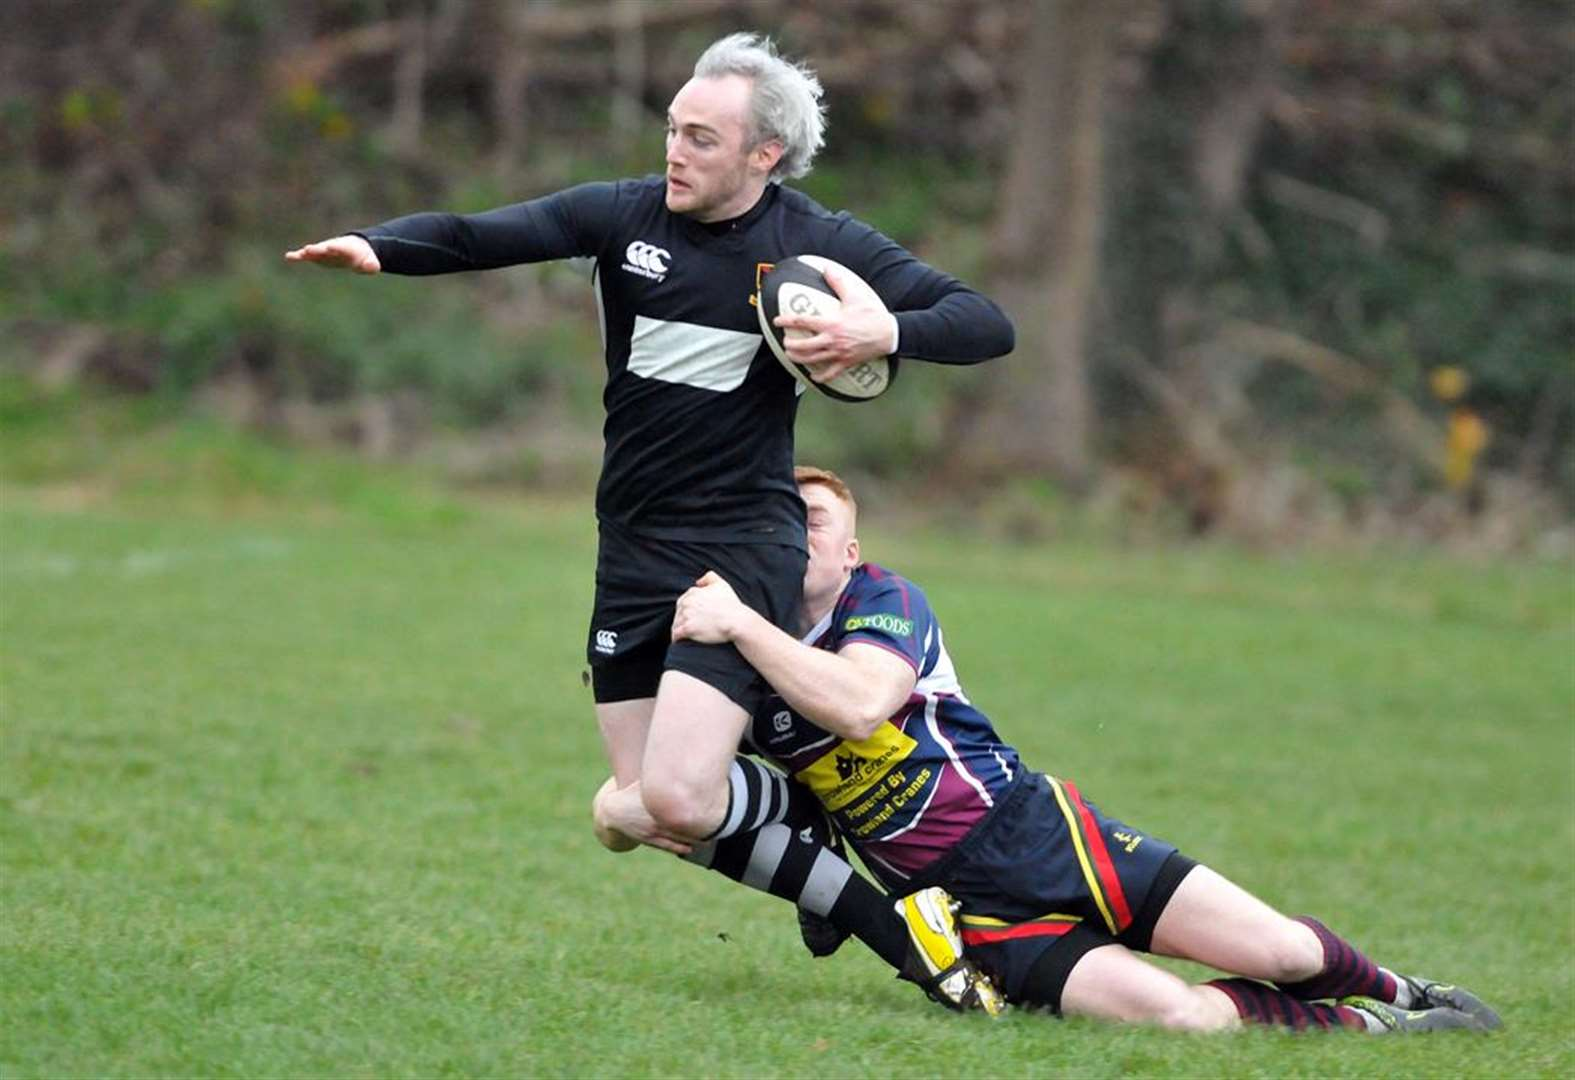 RUGBY: Spalding take home walk over win and leave stage for Nomads